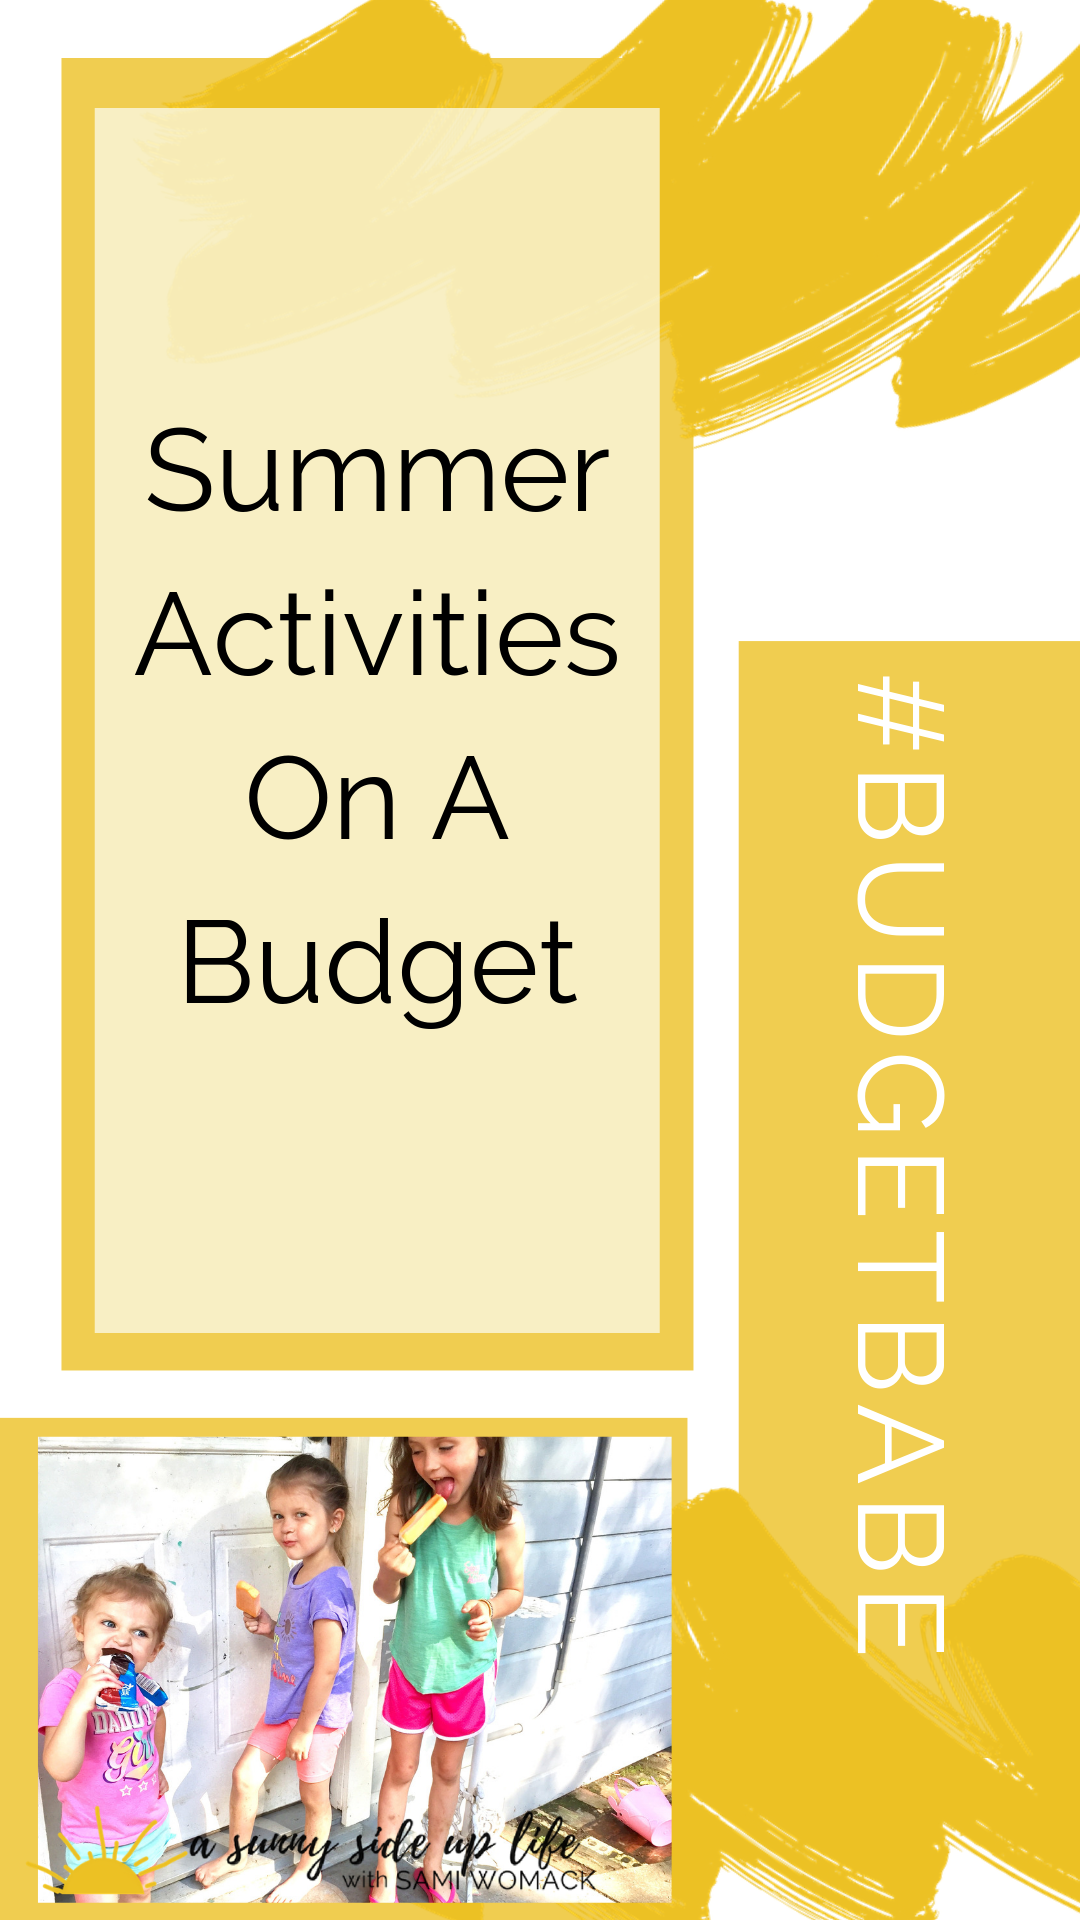 beginning debt free journey | budgeting | budget | how to start | budgeting tools | baby step 1 | where to start with your budget | summer activities for kids | family summer fun | summer on a budget | frugal ideas | cheap suggestions | children | summer break